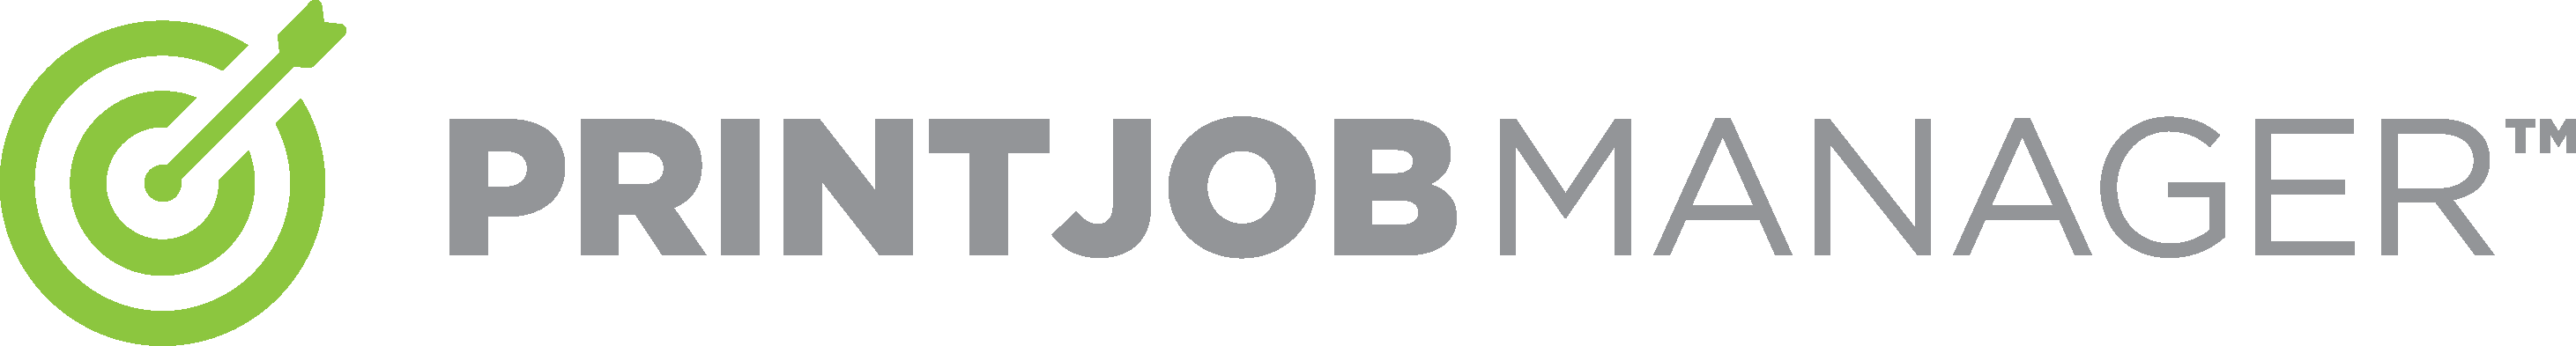 PrintJobManager_horizontal